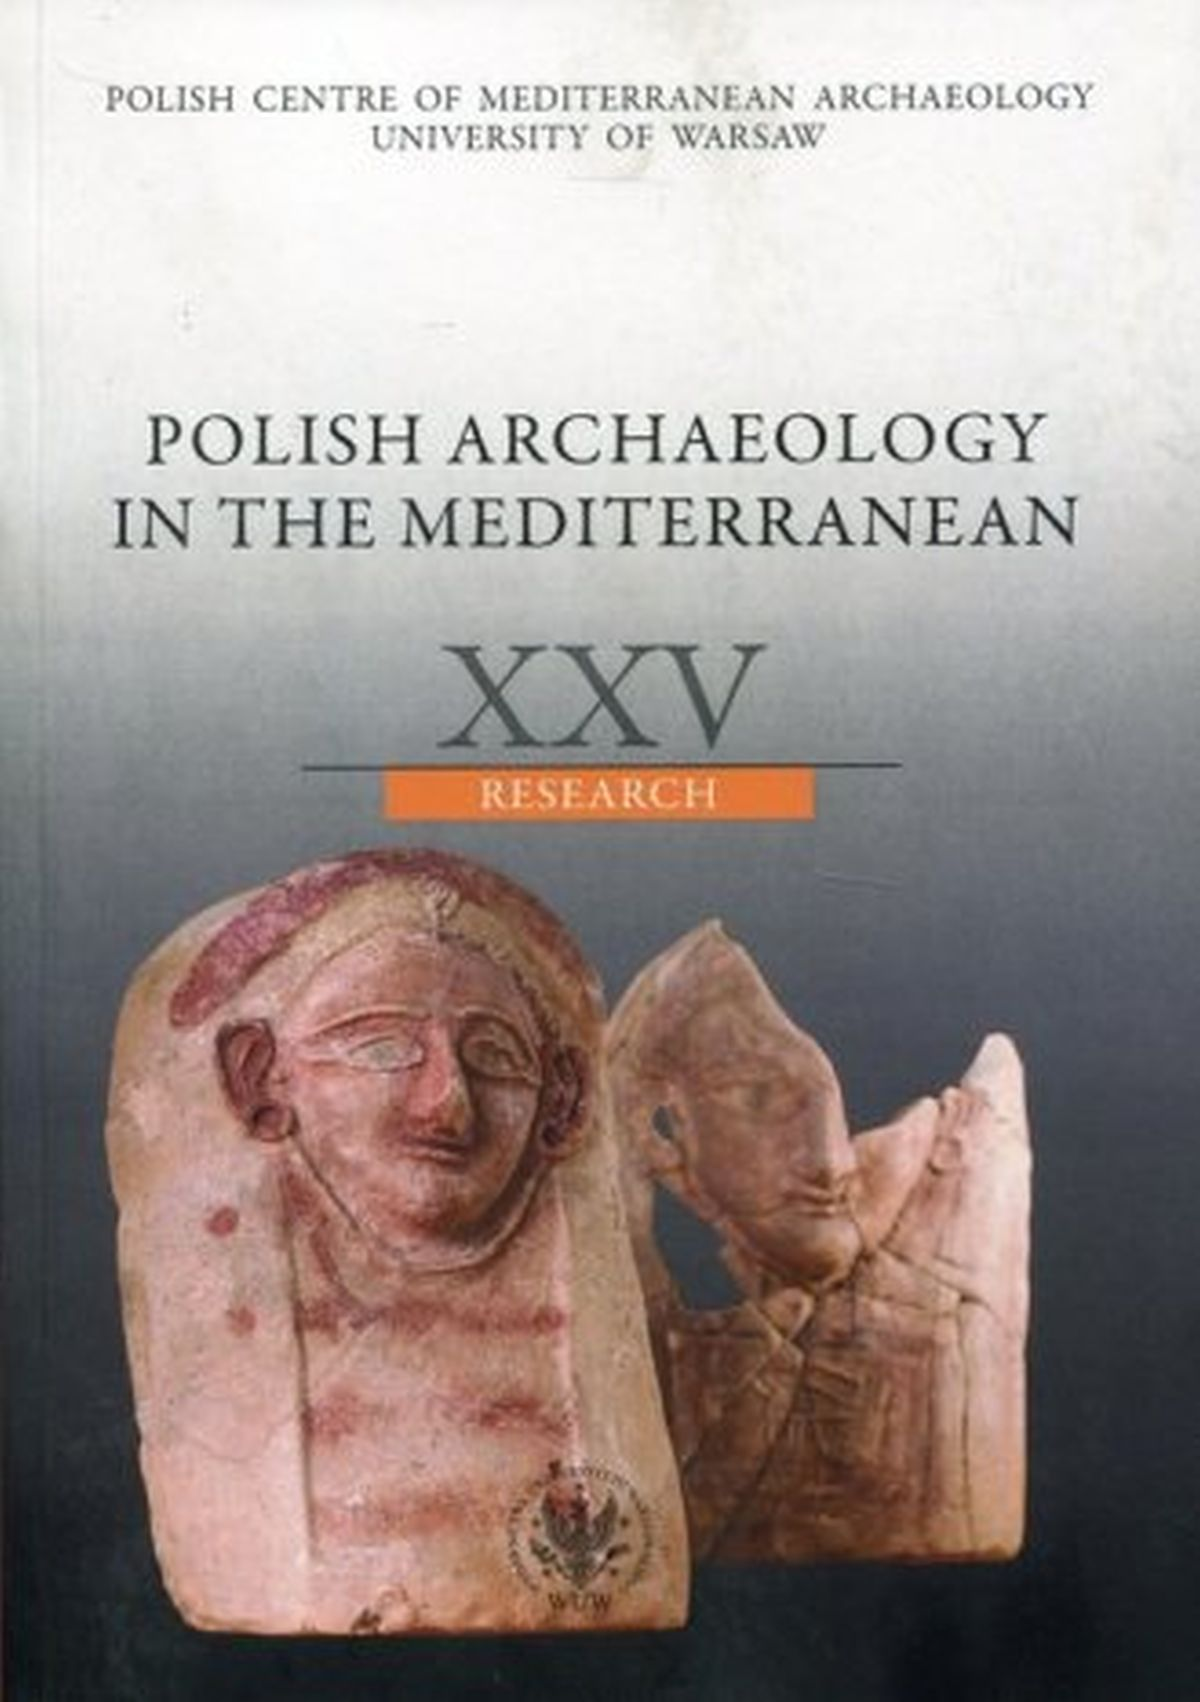 Polish Archaeology in the Mediterranean XXV Research